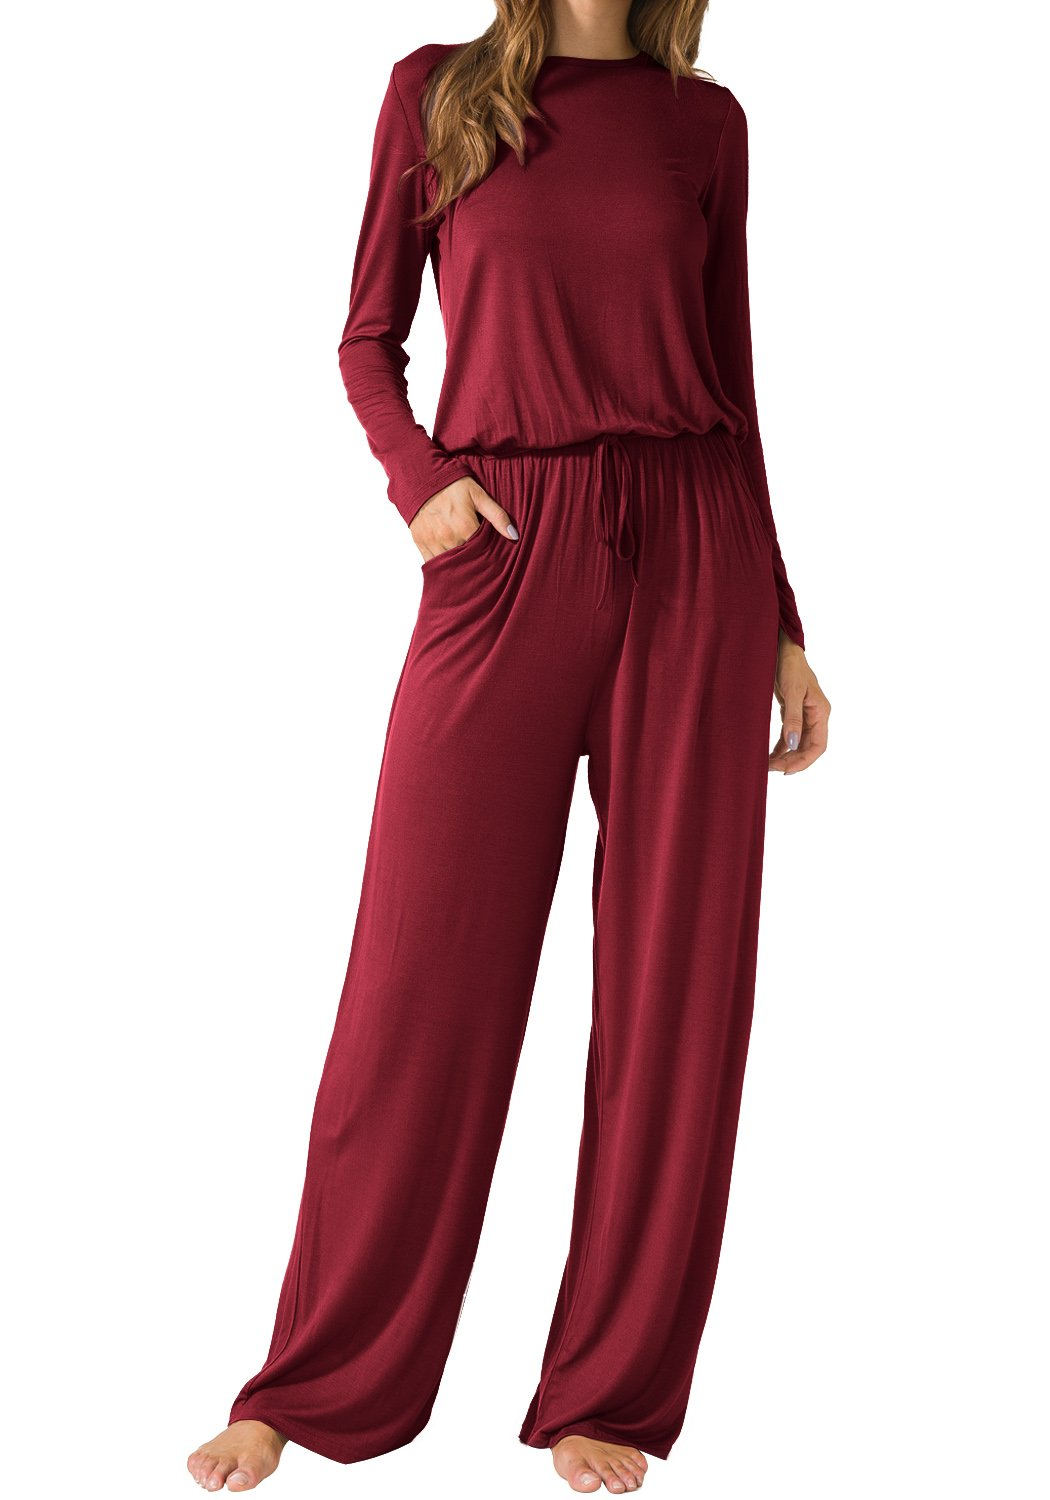 5edc8bc21e18 LAINAB Womens Casual Long Sleeves O Neck Jumpsuits Rompers with Pockets  Wine L